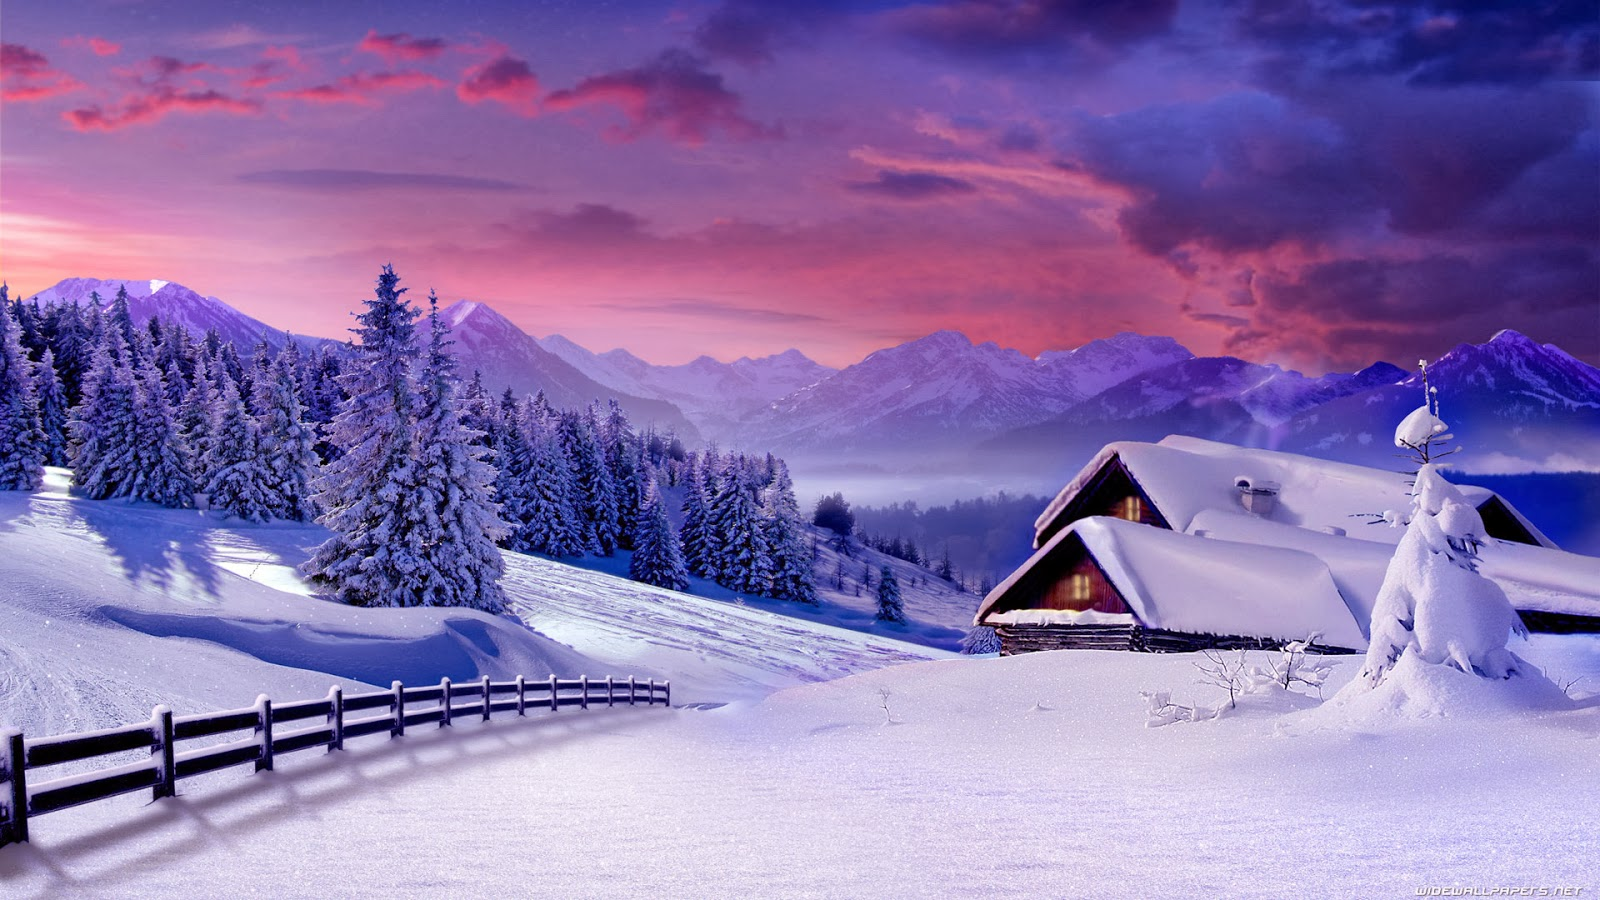 hd free wallpaper winter scene